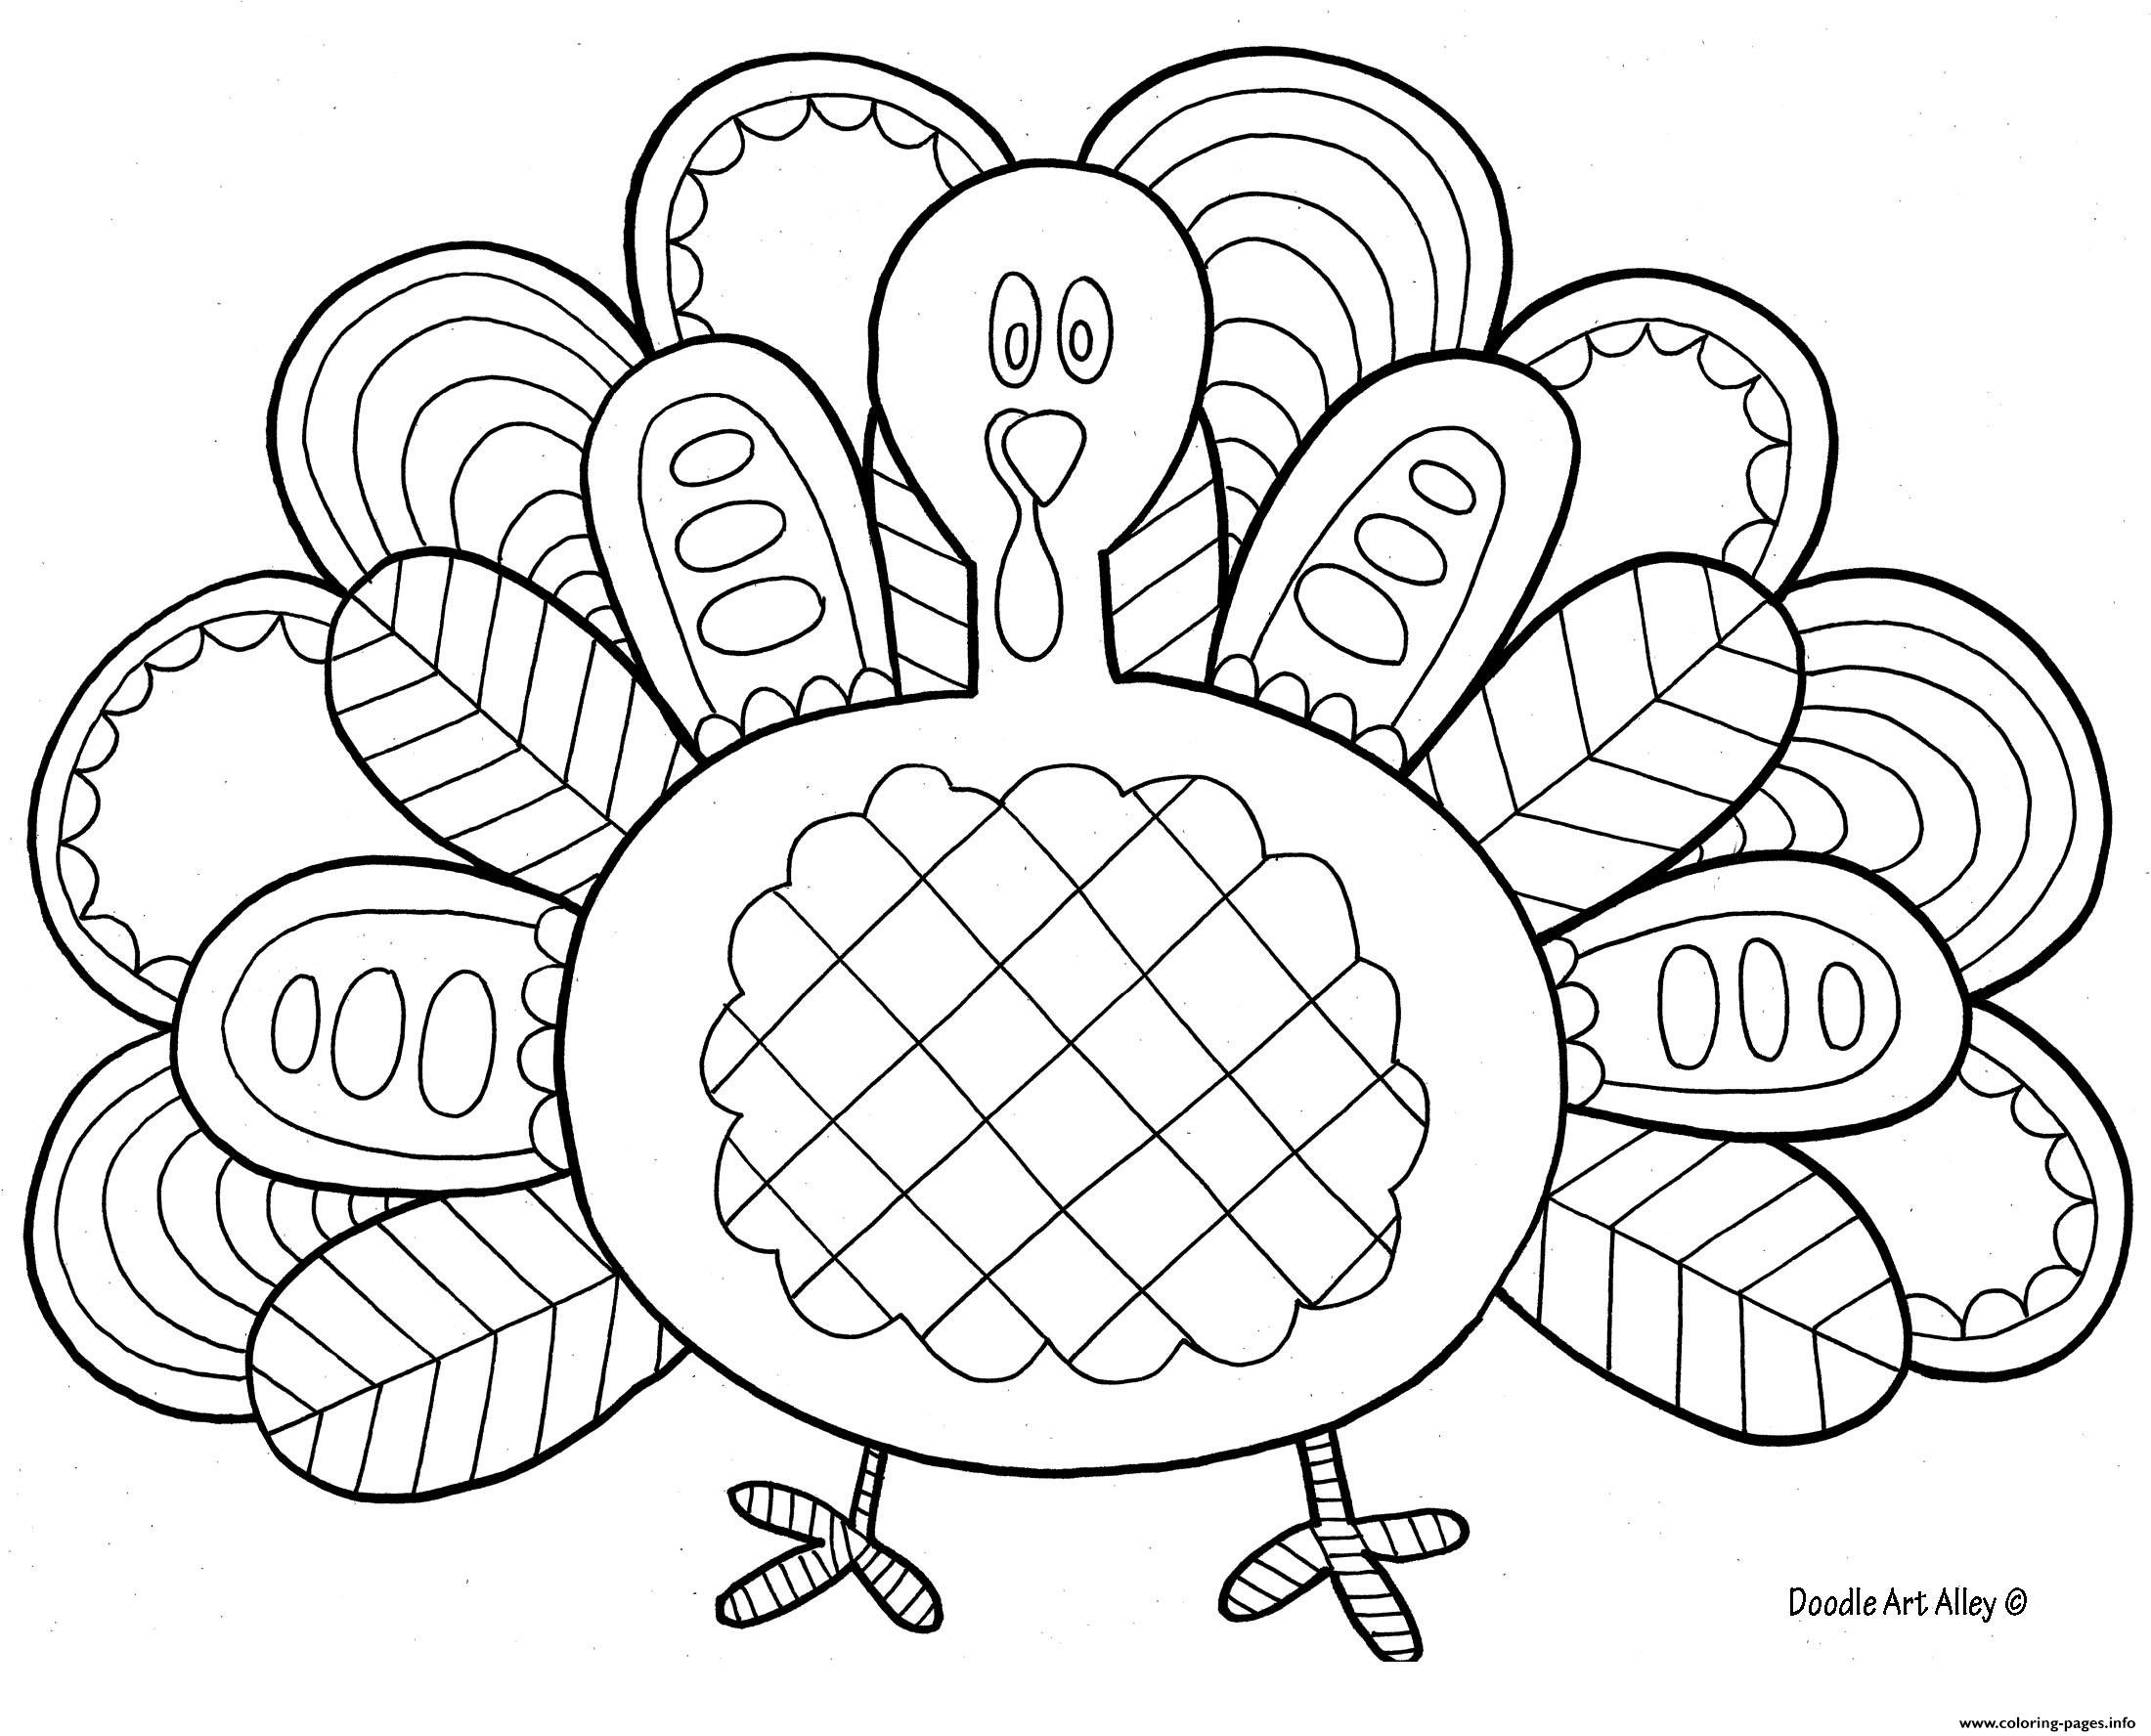 Thanksgiving Day Coloring Pages Free Turkey Ring Sheet Book World Free Printable Feather Page Body